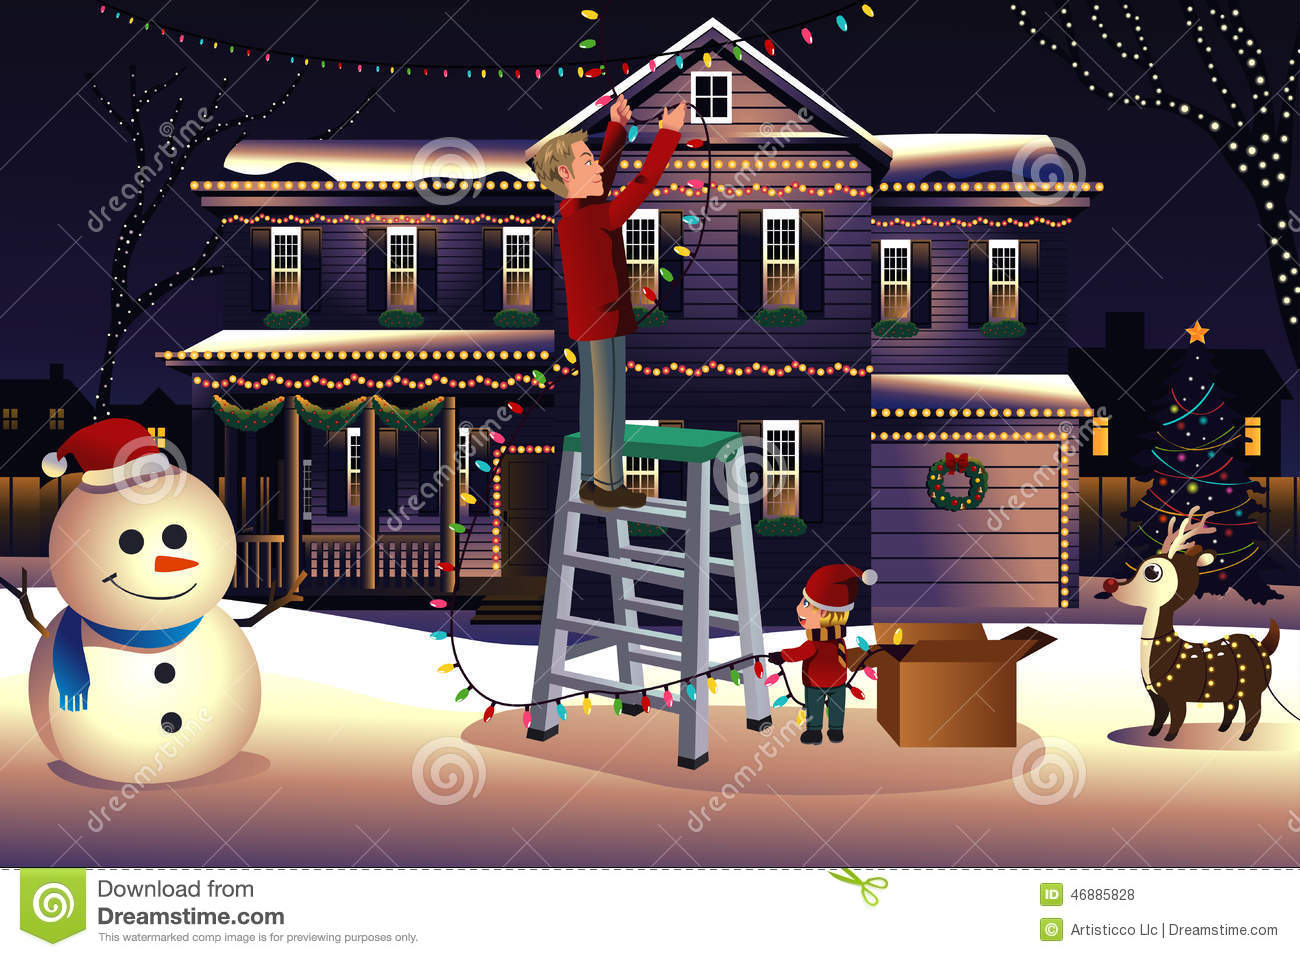 Vector illustration of father son putting up lights around the house